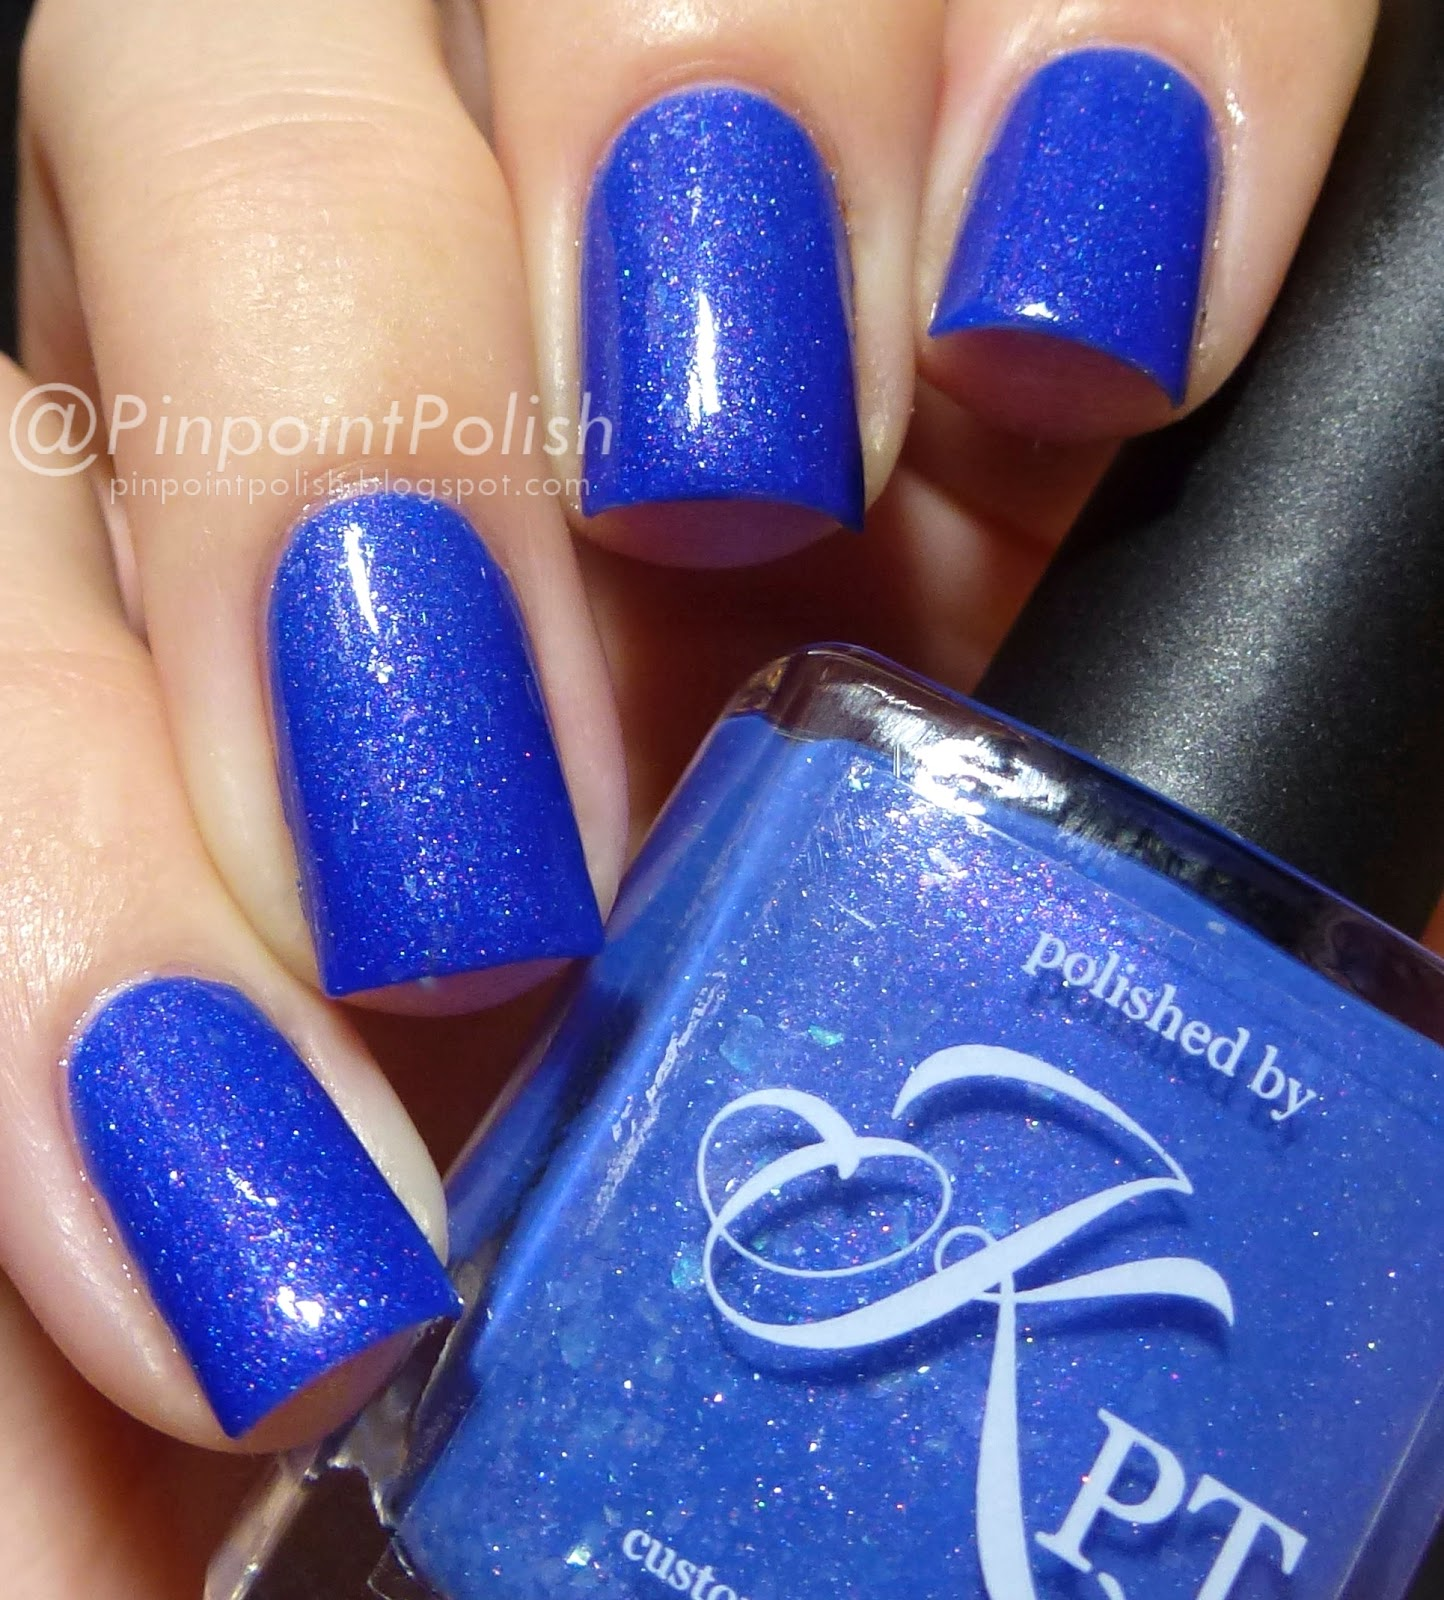 Hyacinth, Polished by KPT March Into Spring, thermal, swatch